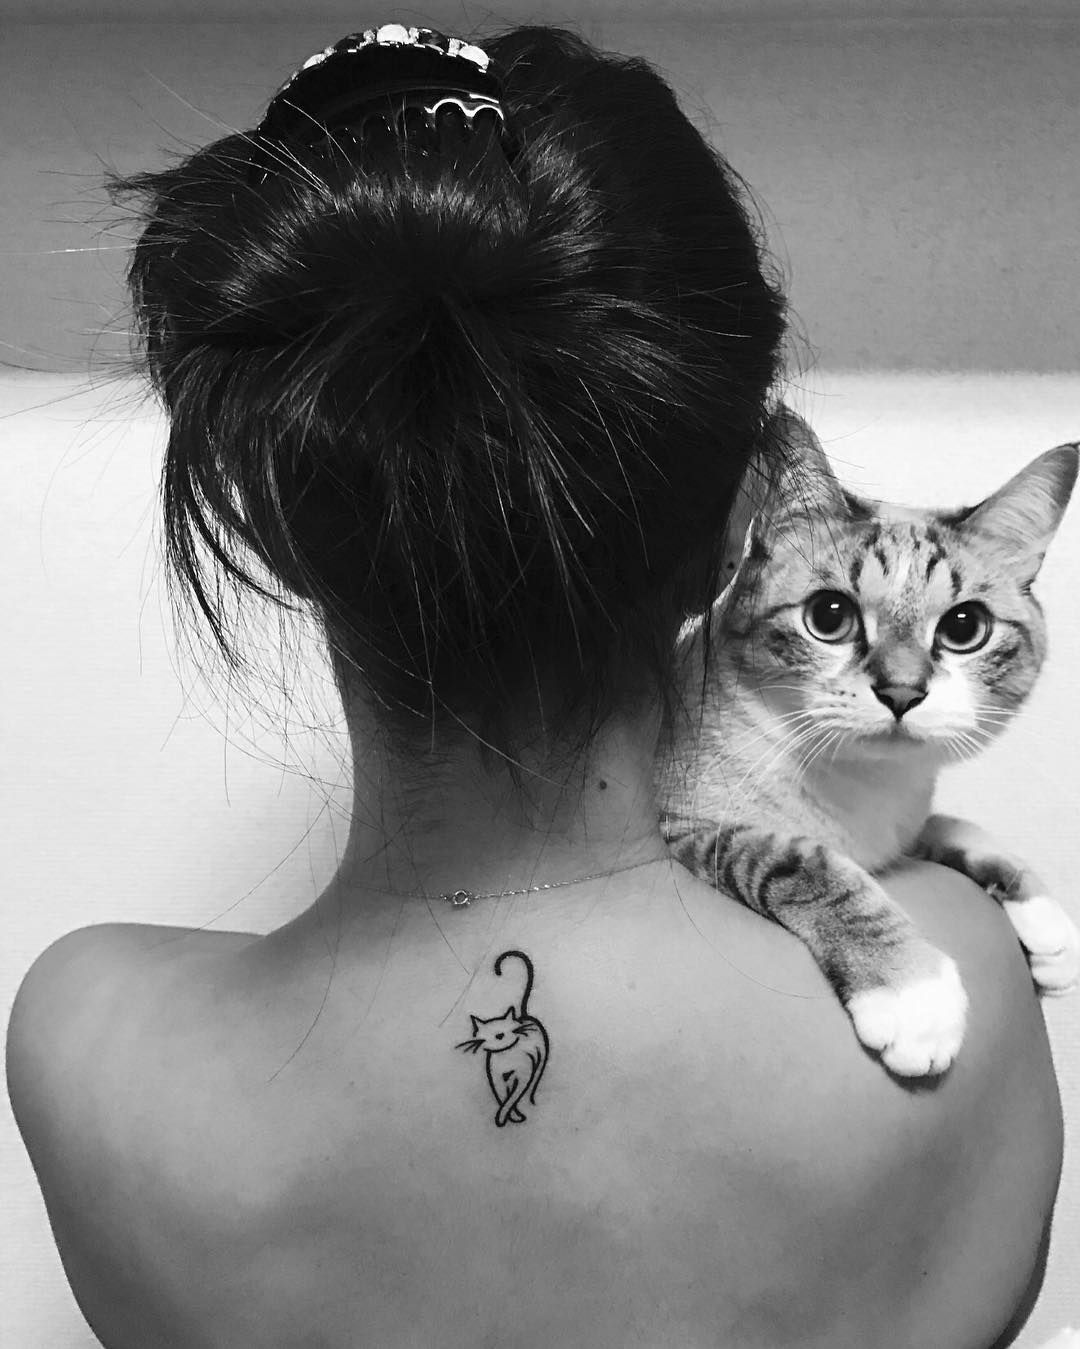 katzen tattoos 25 s e tattoos f r katzen fans tattoos pinterest s e tattoos katzen und s. Black Bedroom Furniture Sets. Home Design Ideas